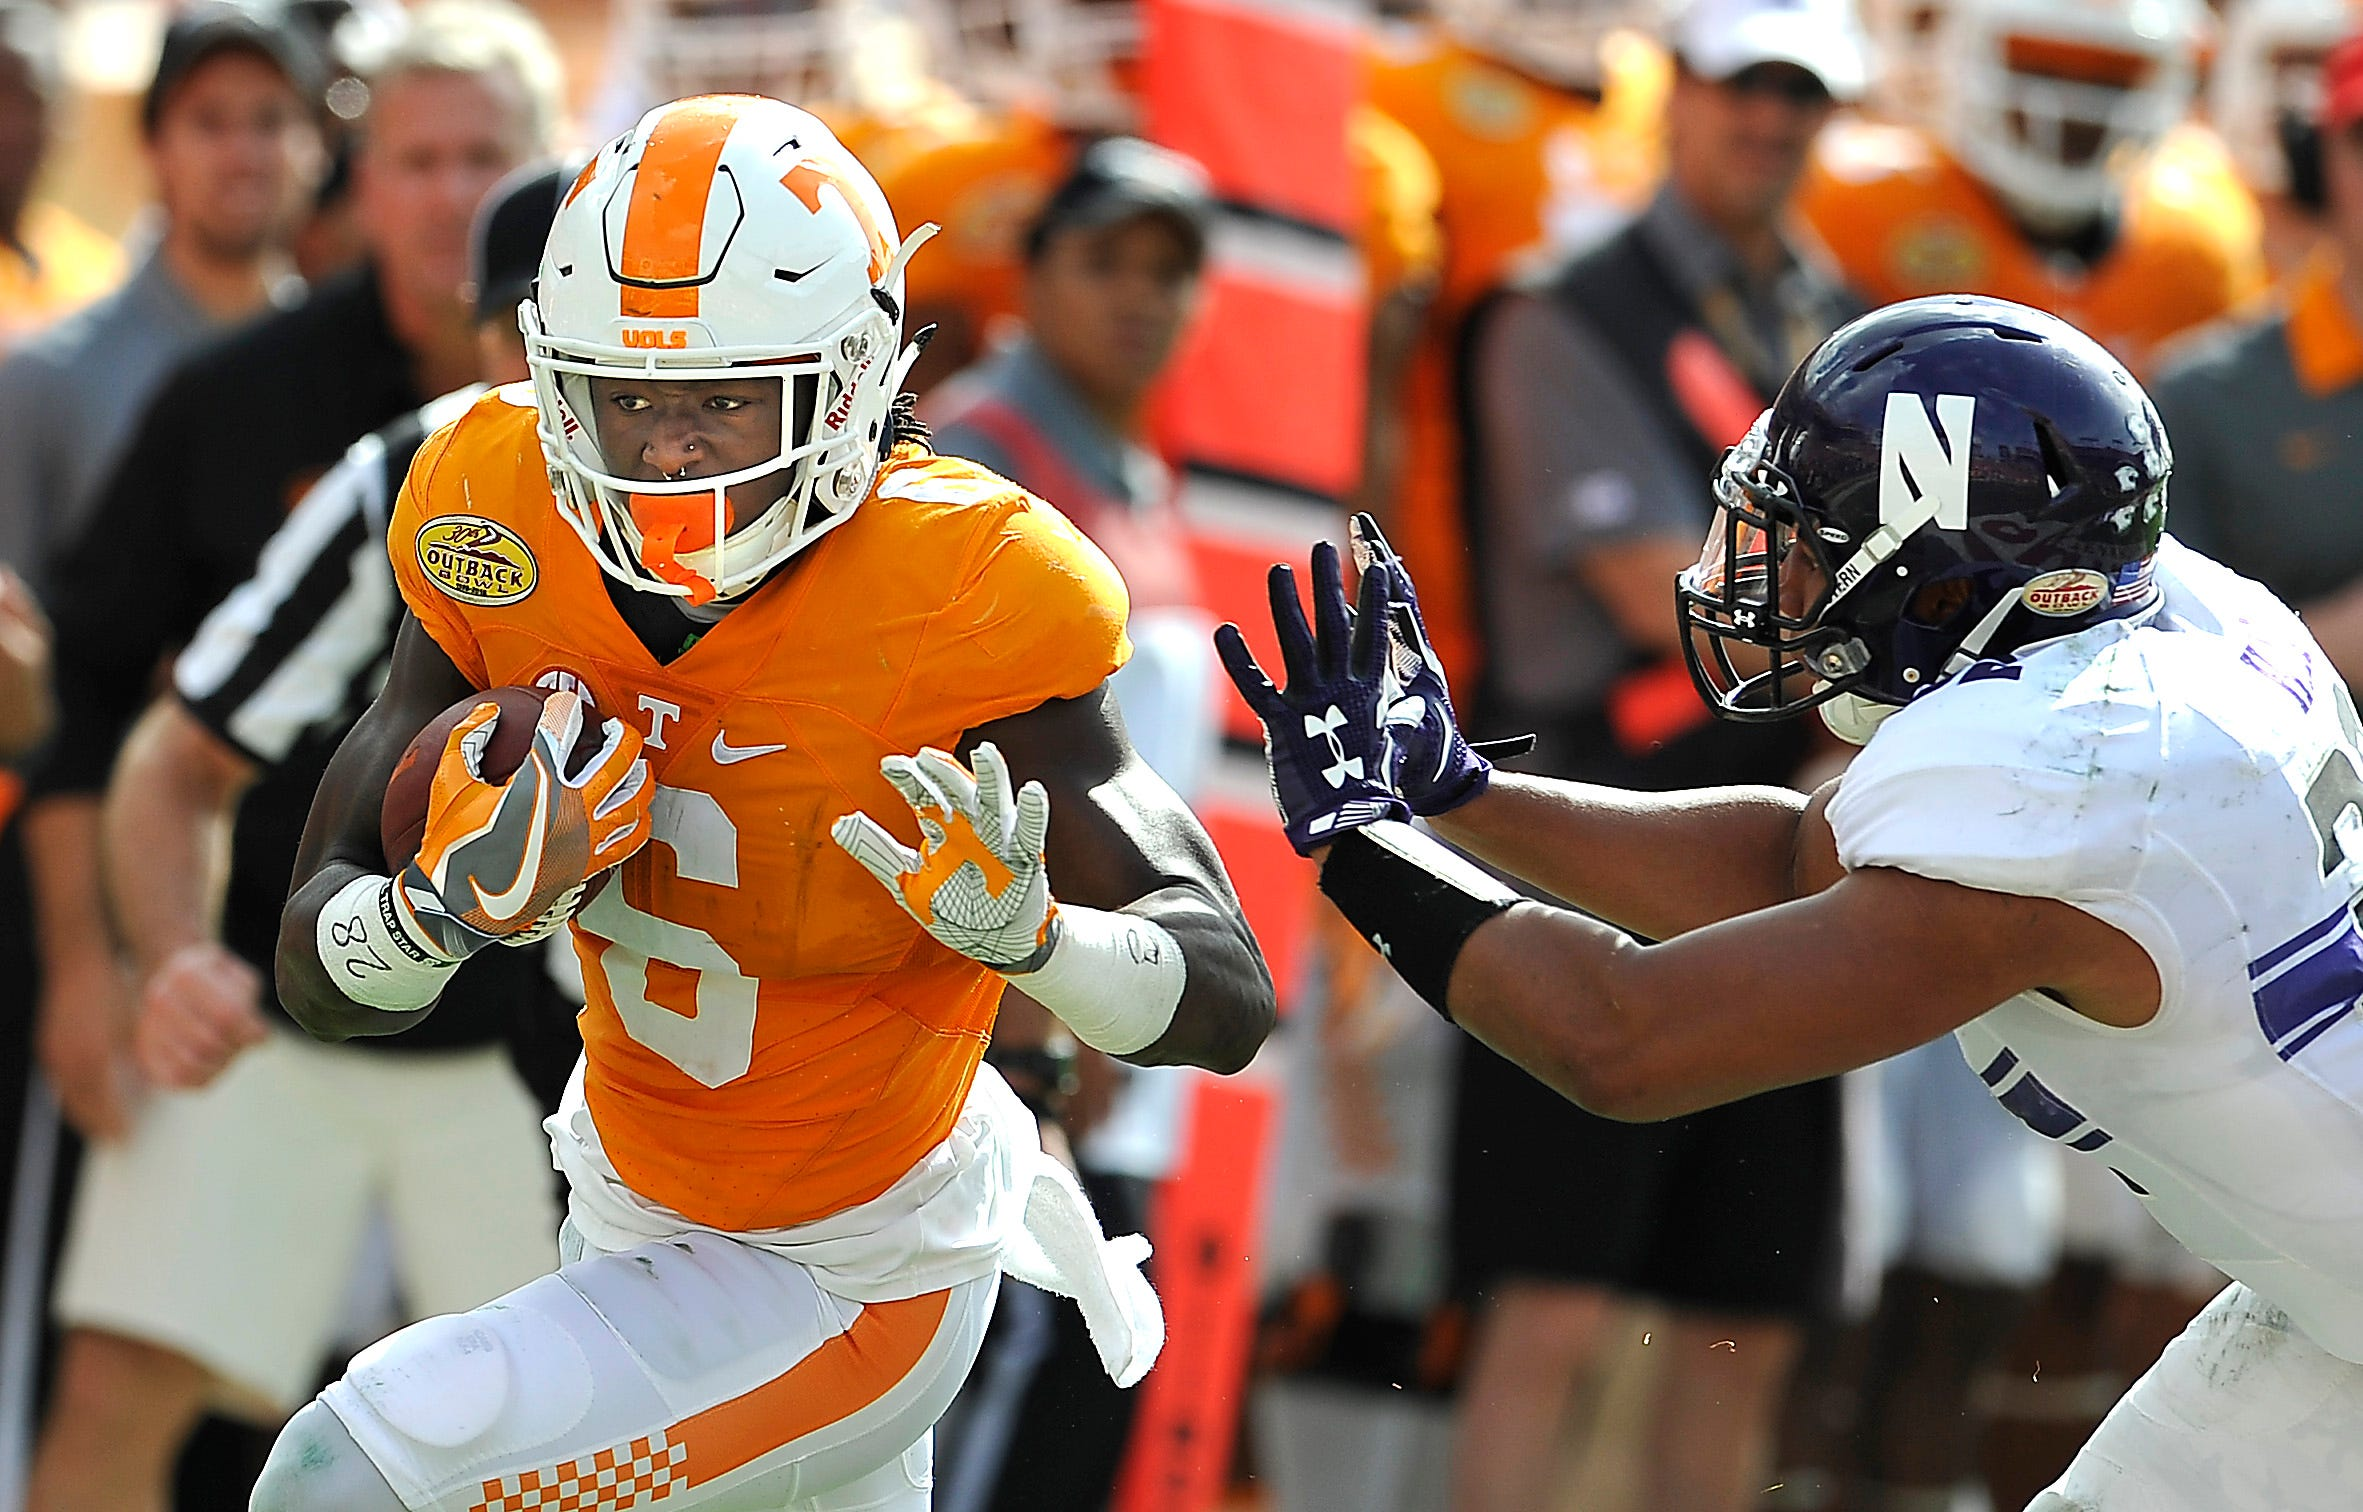 NFL draft: Where will Tennessee Vols land in Day 2?